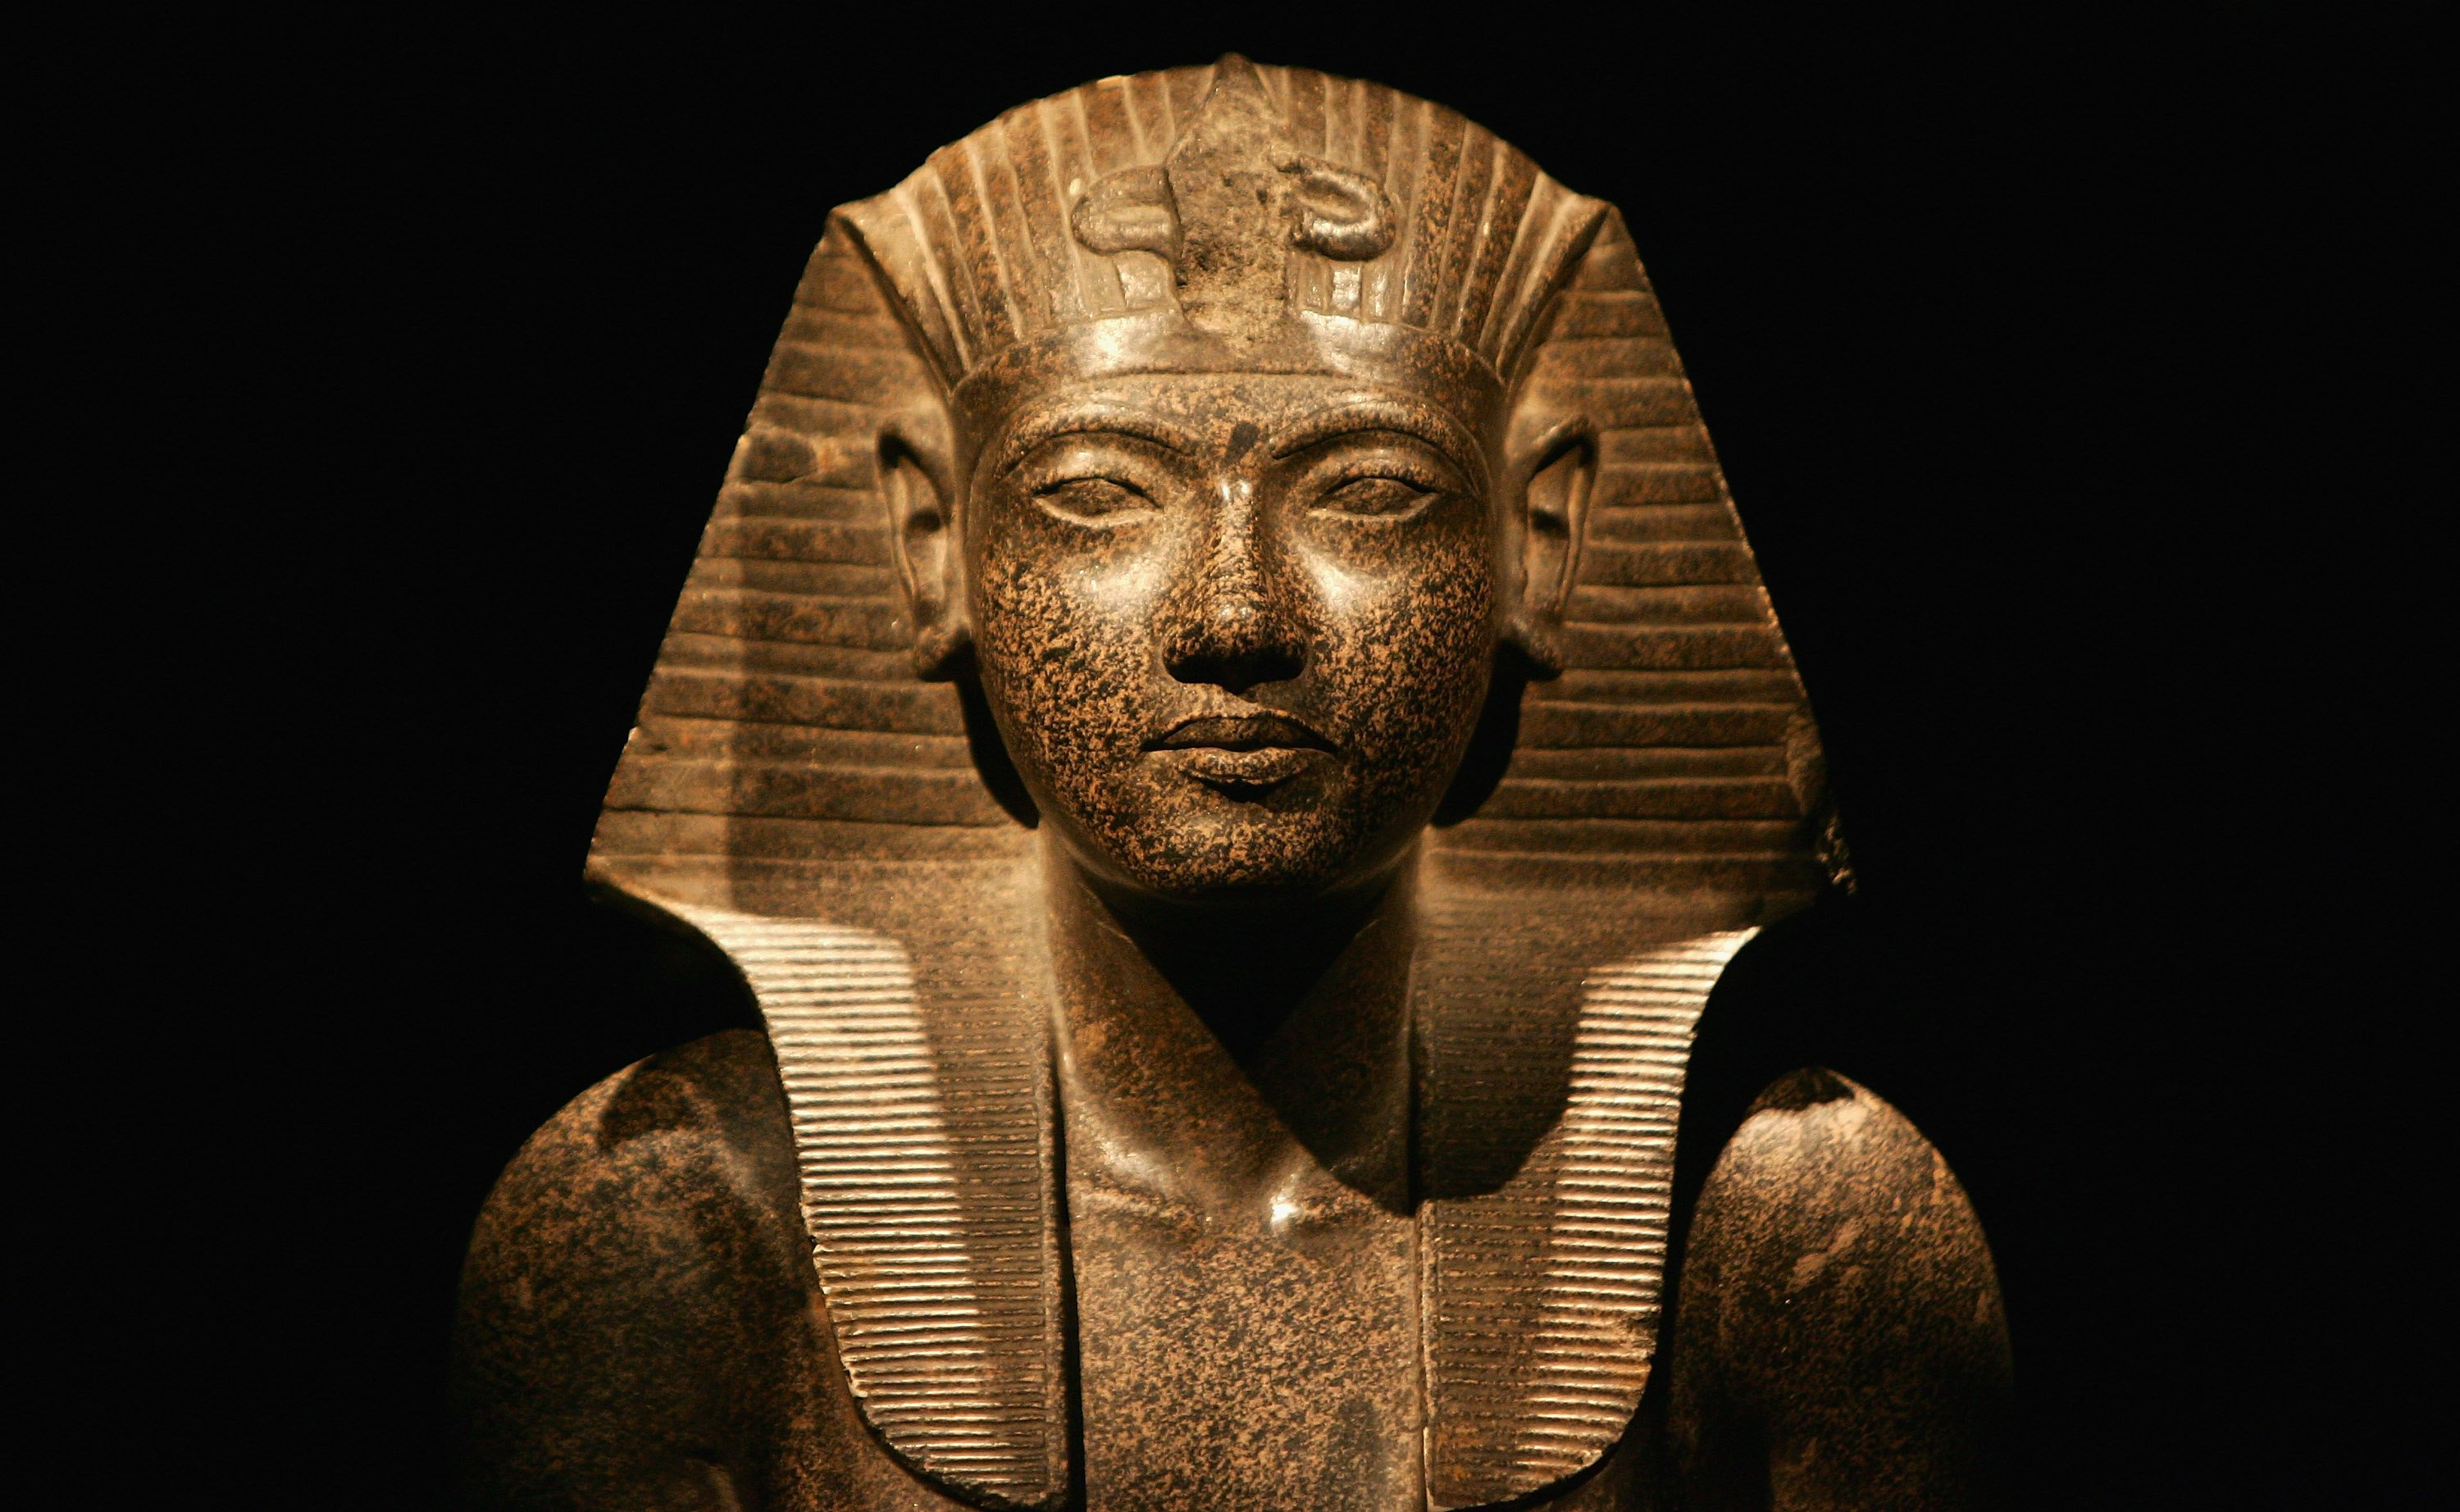 a history of the golden age in amenhoteps reign in egypt The eighteenth dynasty of egypt is classified as the first dynasty of the new  kingdom of egypt, the era in which egypt achieved the peak of its power the  eighteenth dynasty spanned the period from 1549/1550 to 1292 bce   historical era, bronze age  the reign of amenhotep iii is seen as a high point  in this dynasty.